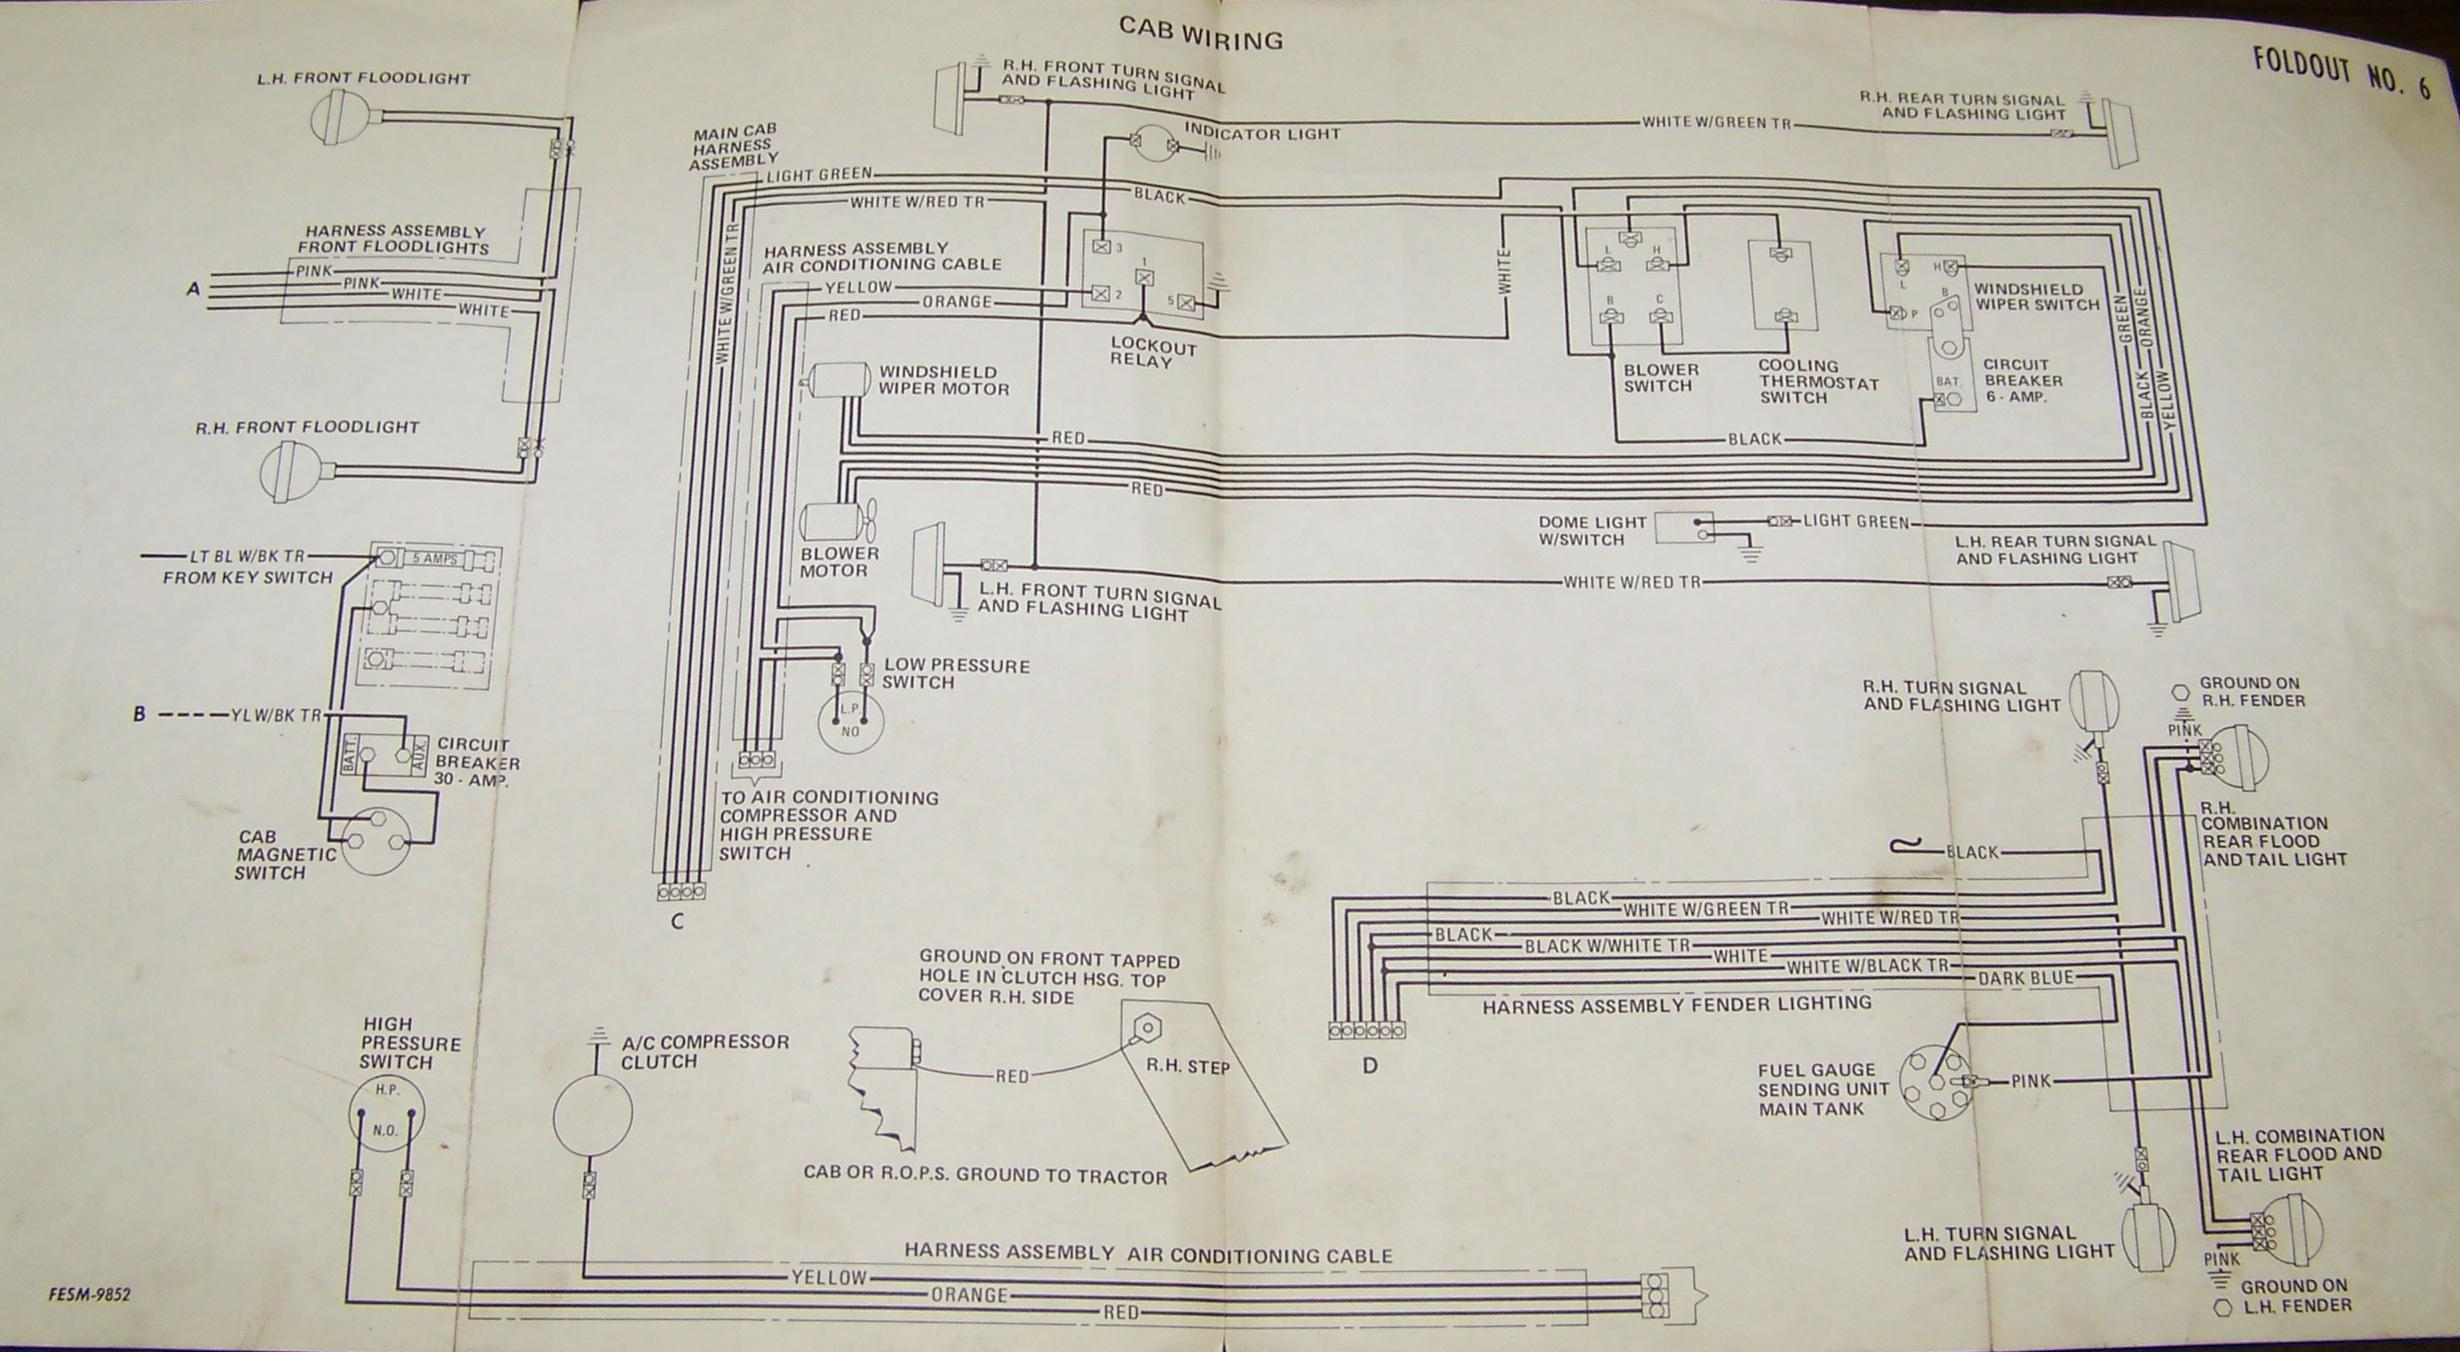 86series6 radio wiring diagram ih 1586 ih 1066 wiring diagram \u2022 wiring simple tractor wiring diagram at nearapp.co